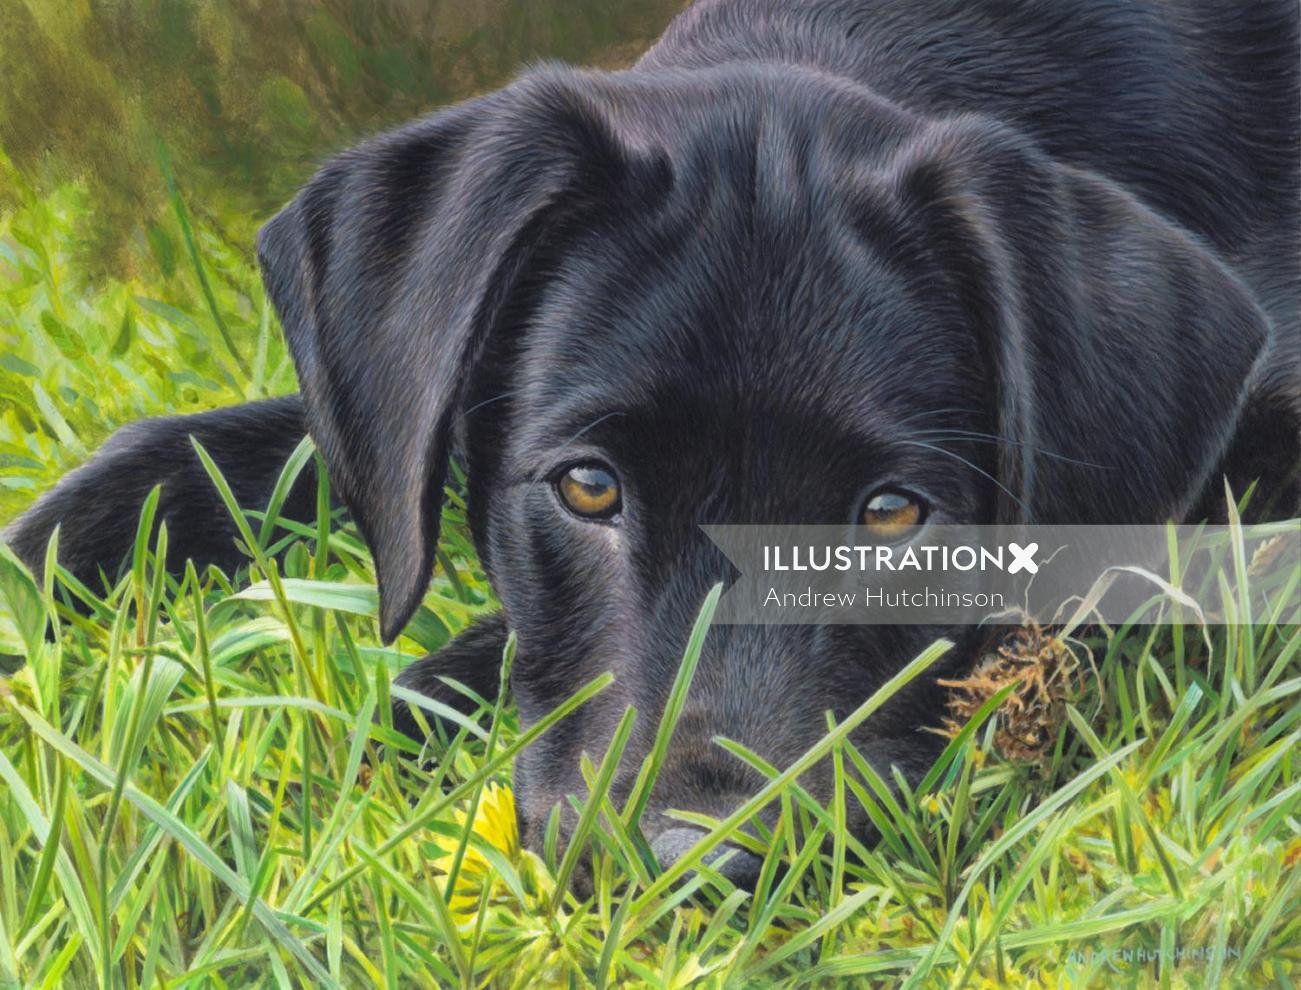 Black labrador illustration, Animals and Pets Images © Andrew Hutchinson